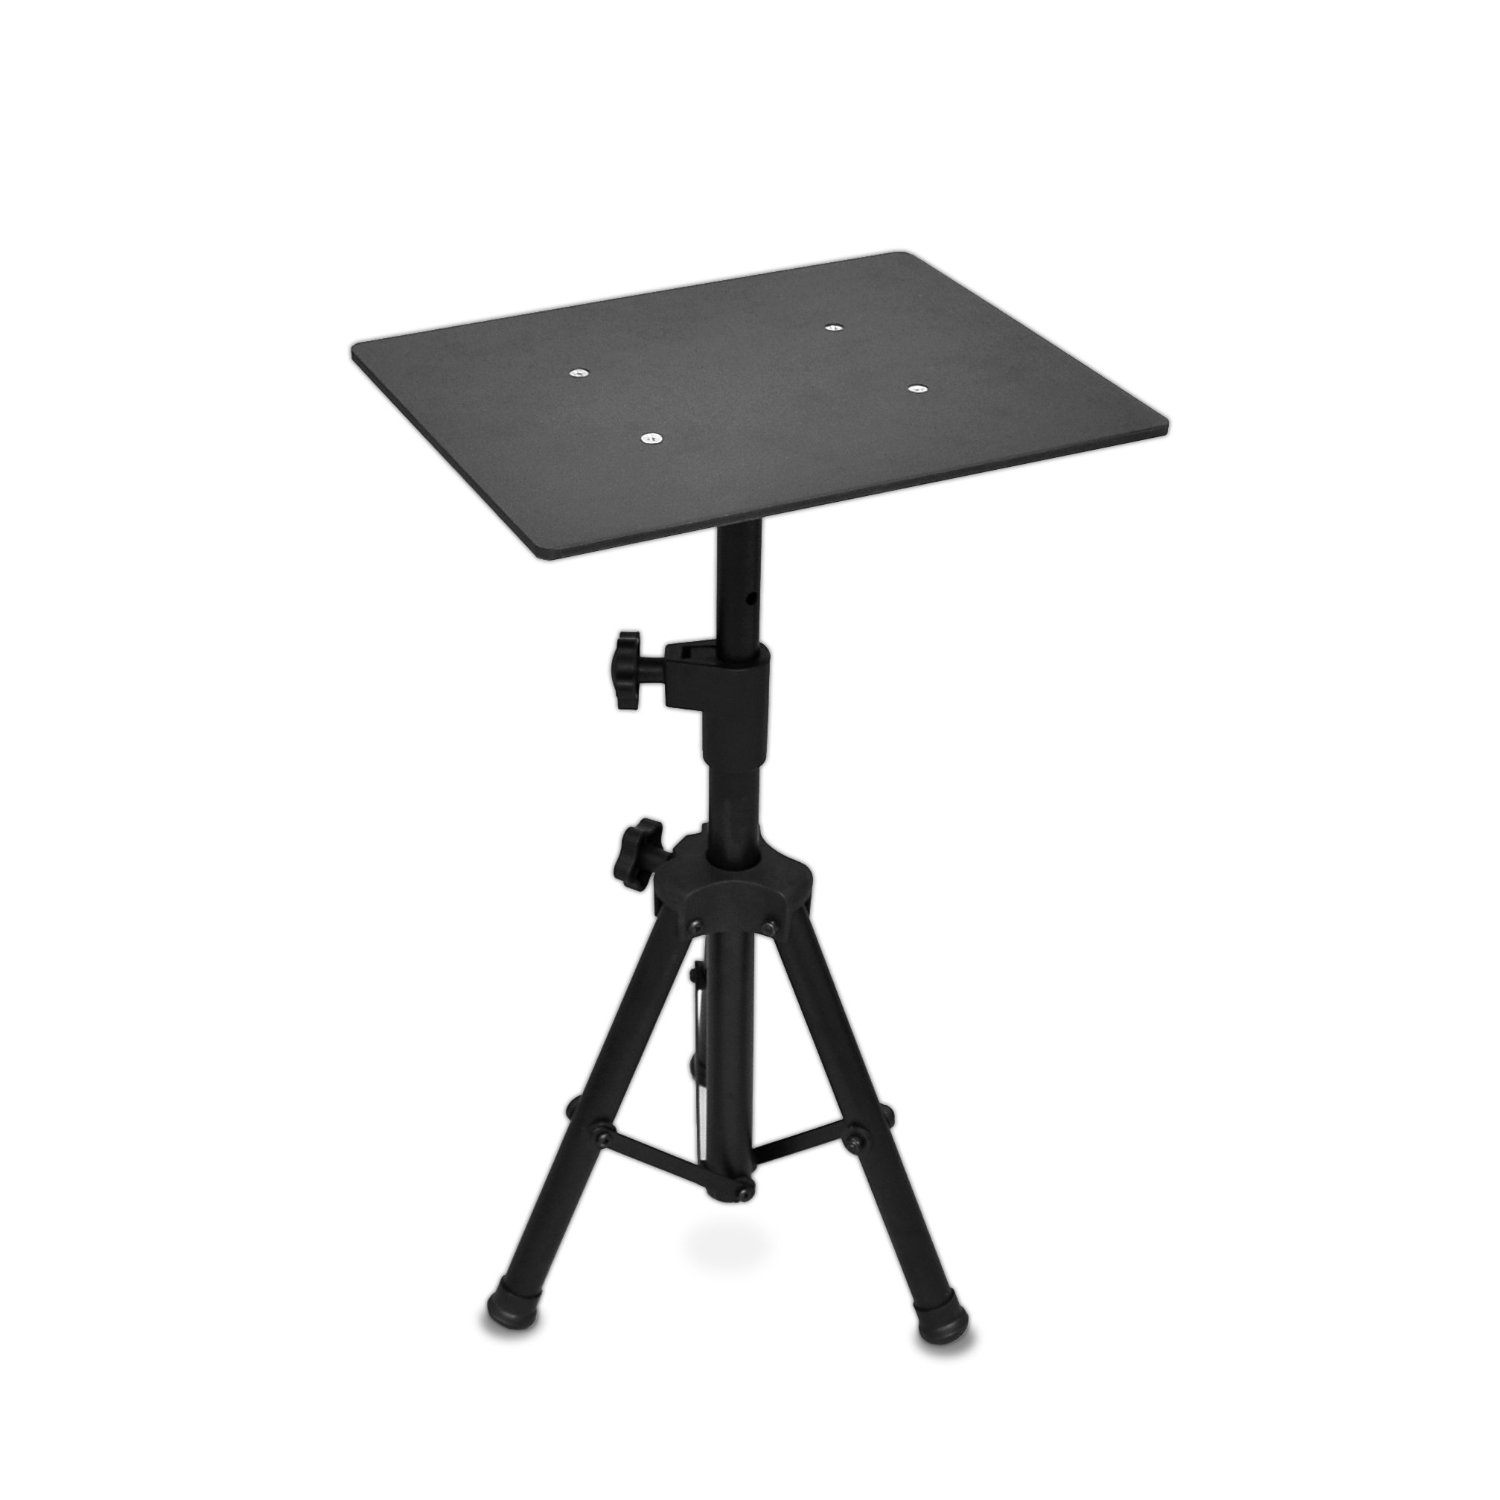 Projector Stand Rental Des Moines, IA - Metro Rental